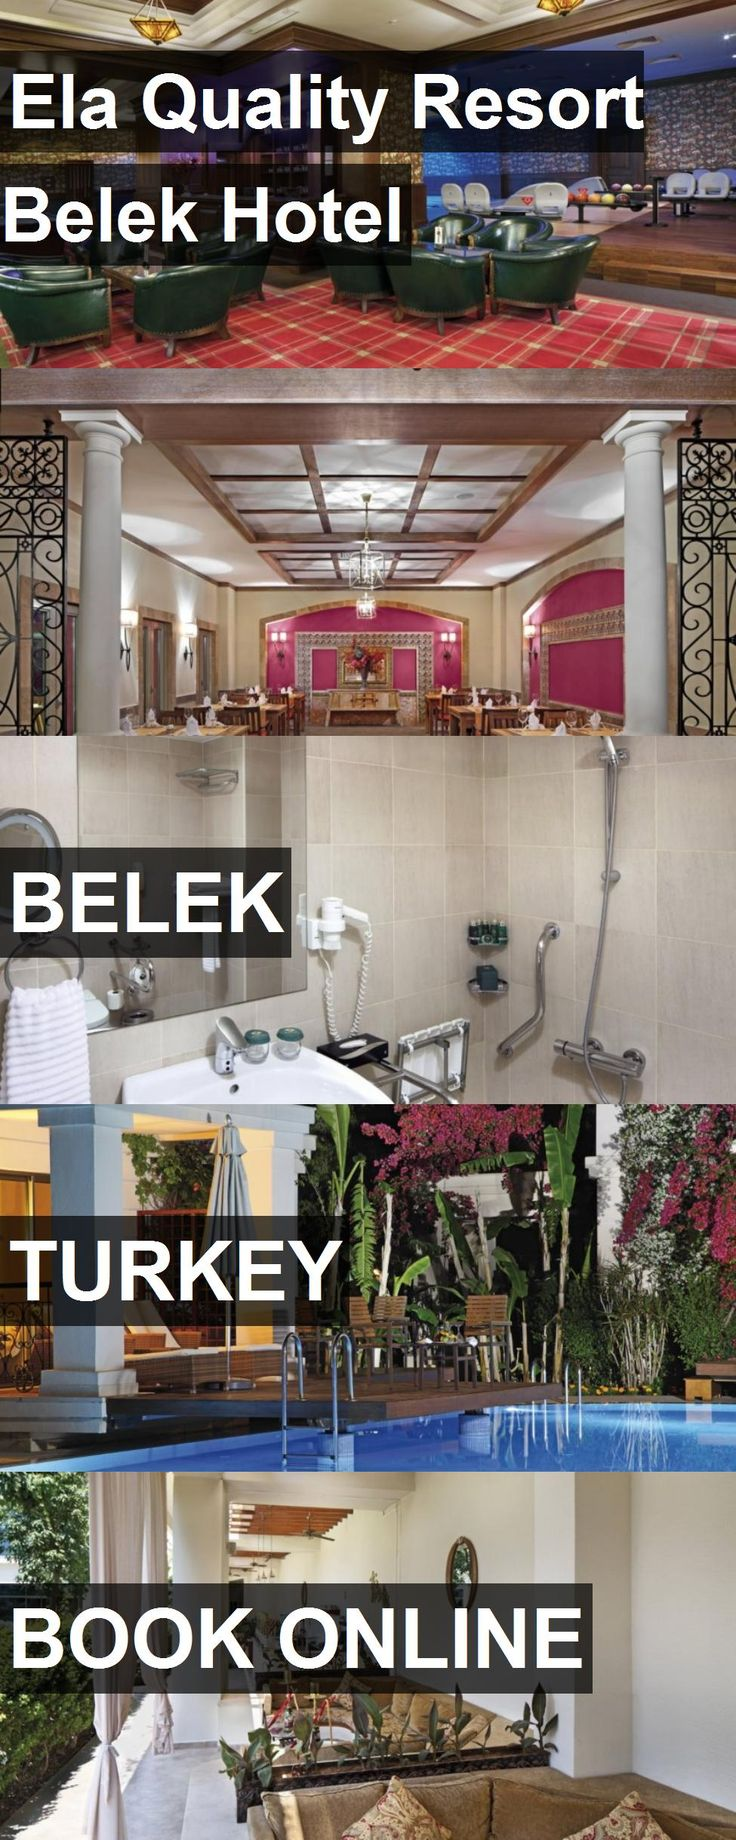 Hotel Ela Quality Resort Belek Hotel in Belek, Turkey. For more information, photos, reviews and best prices please follow the link. #Turkey #Belek #hotel #travel #vacation